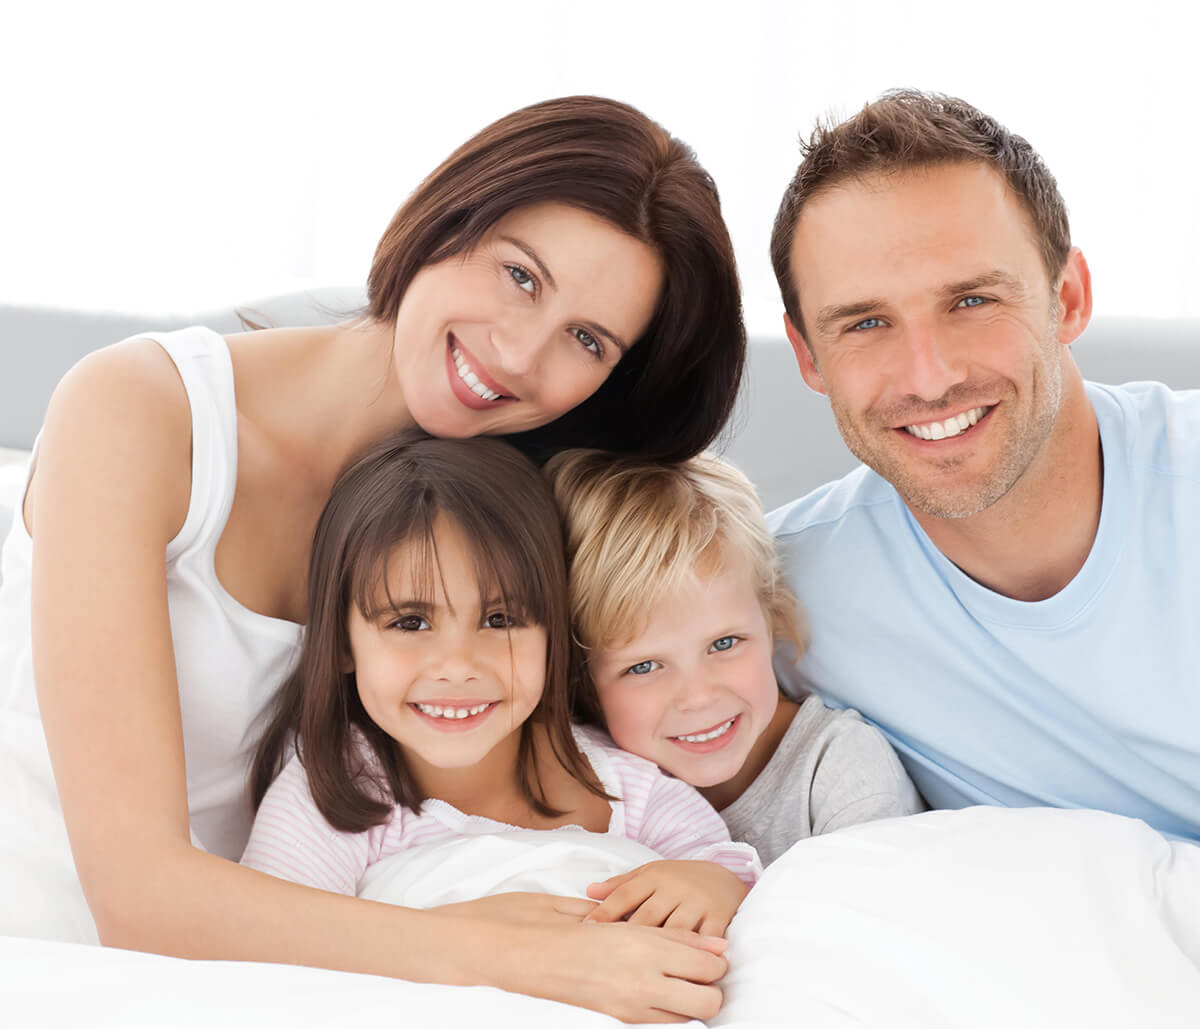 Family Dentistry in Rochester Hills Dr. John Aurelia Rochester, MI, family dentist, blends warm personnel, sophisticated tech for exceptional care